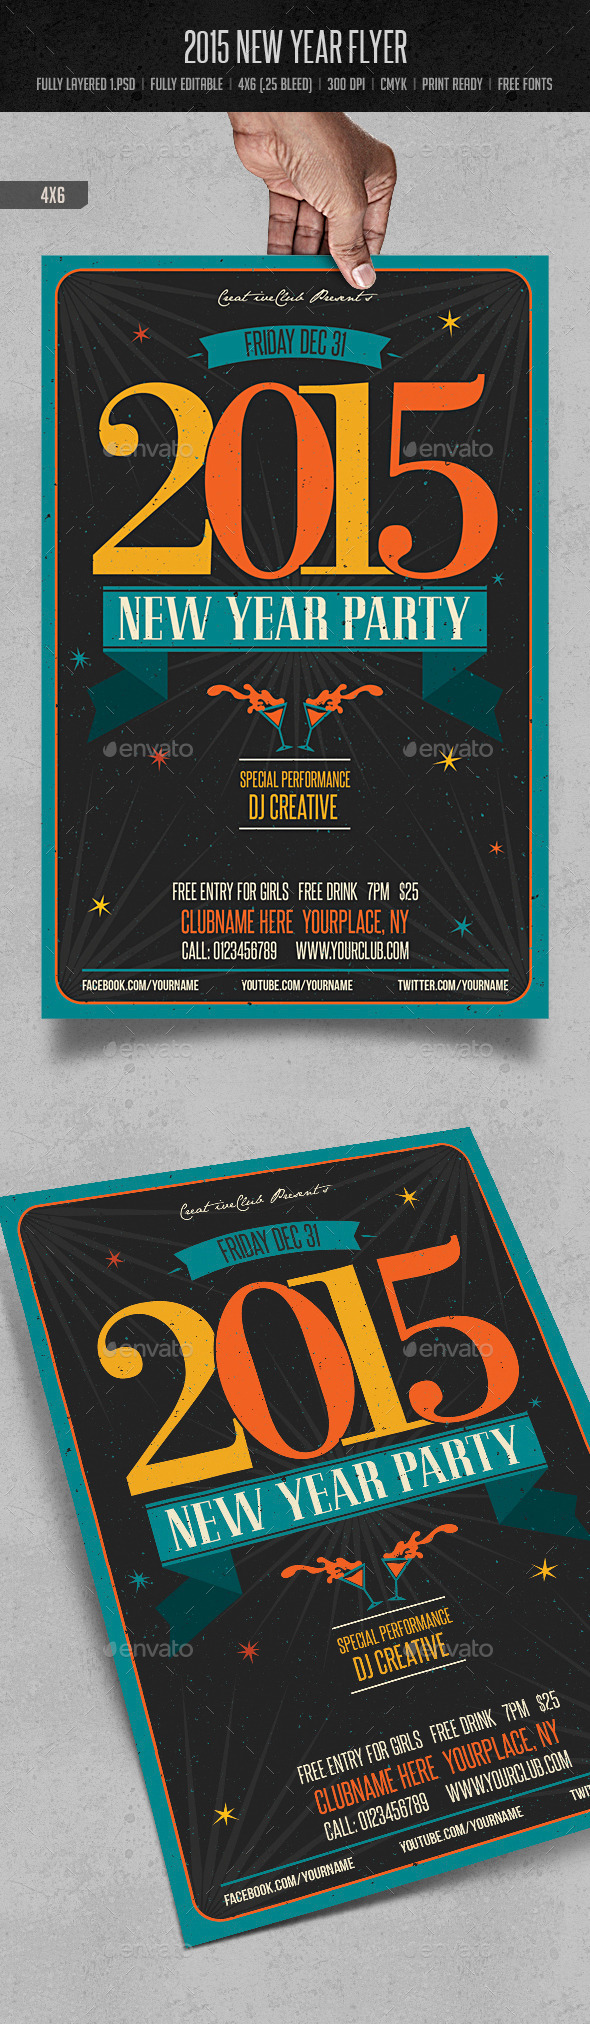 GraphicRiver 2015 New Year Flyer 9631089